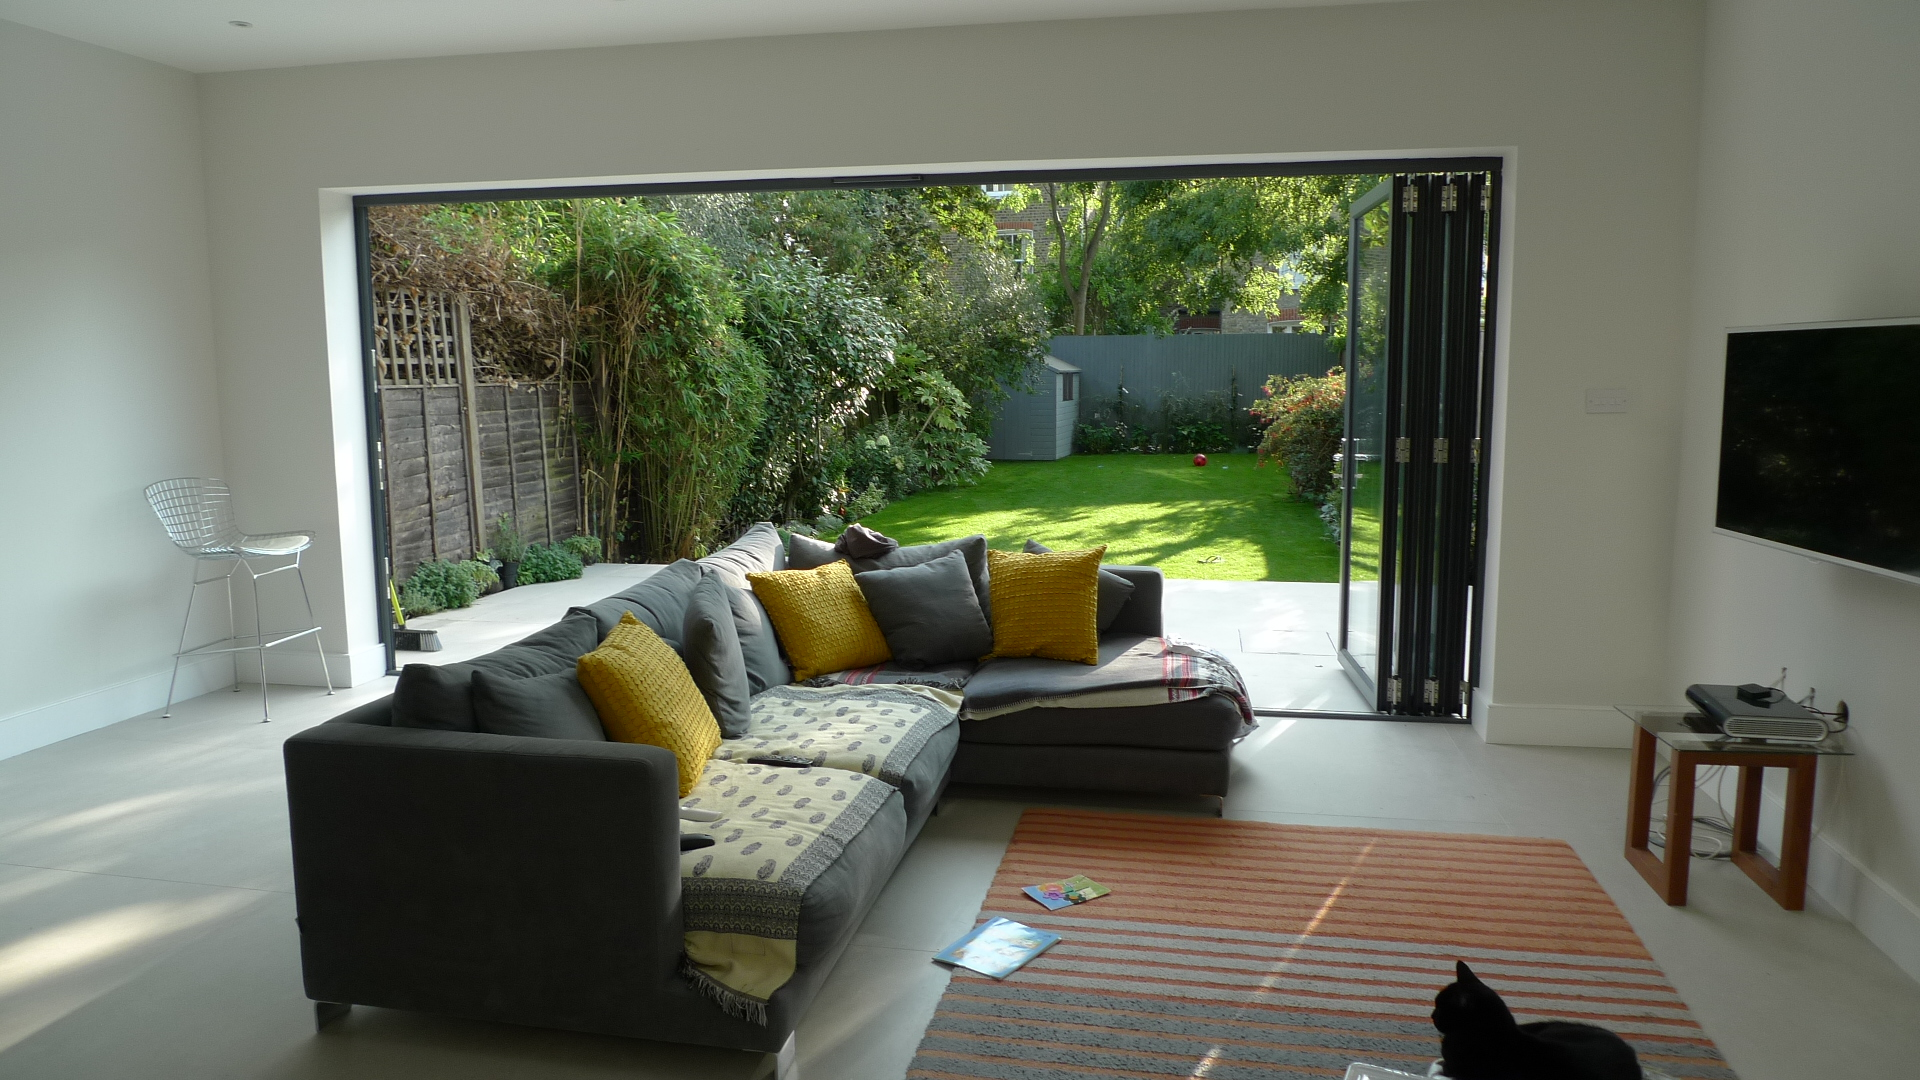 Modern design interior and exterior balham tooting london london garden blog - Modern home design interior ...